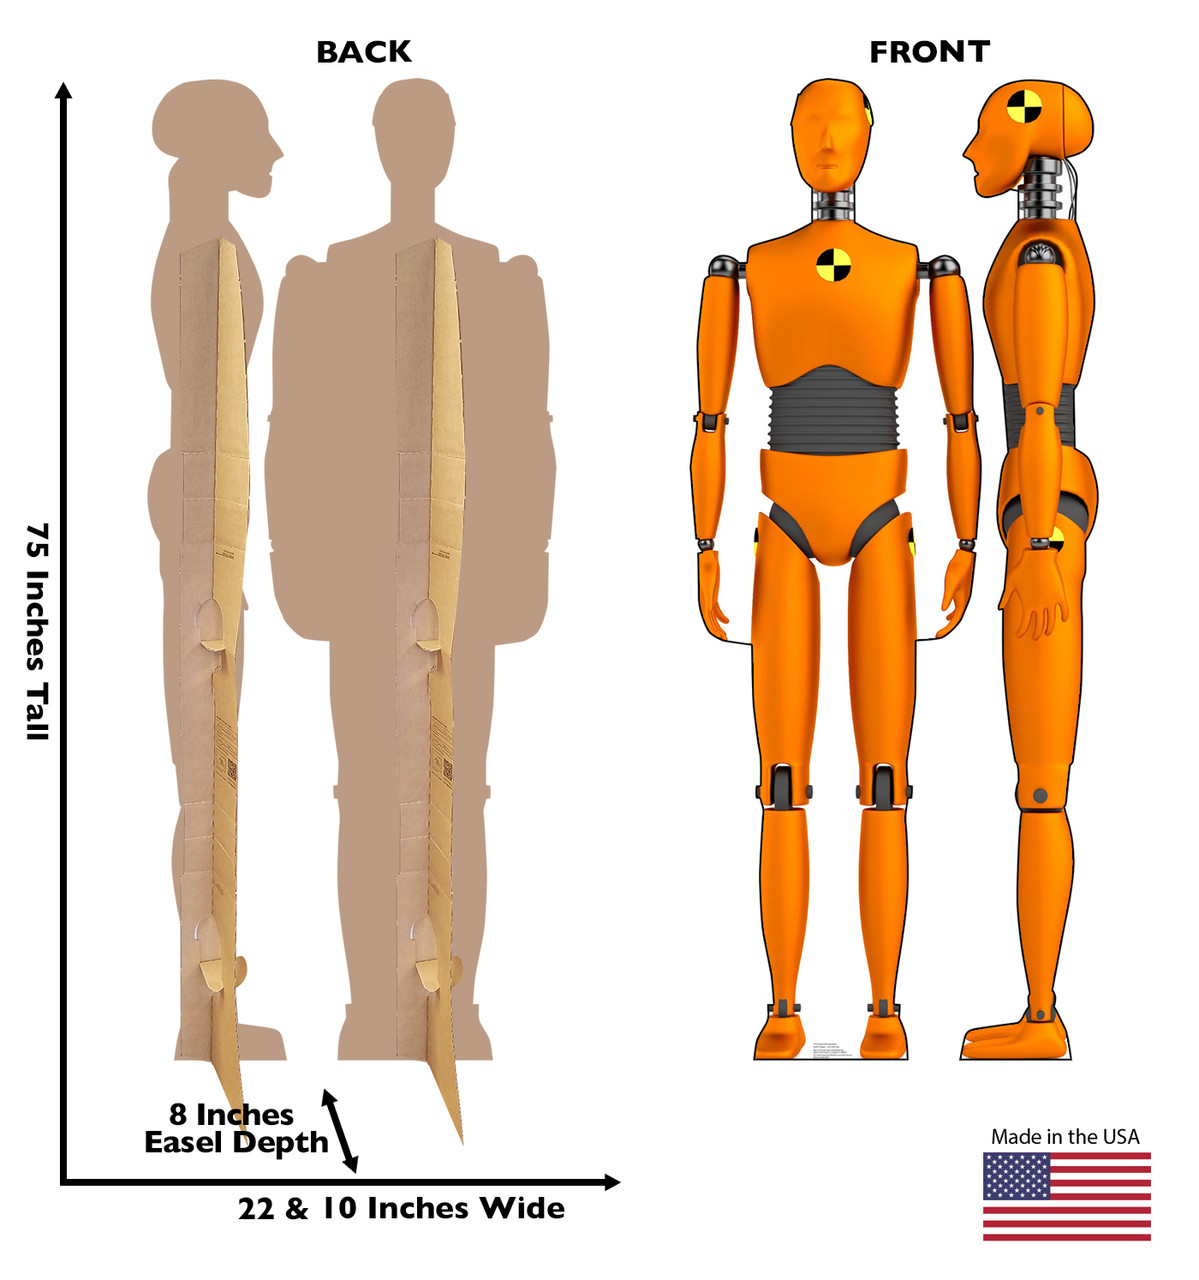 Life-size cardboard standee of Crash Test Dummies (set of two) with back and front dimensions.